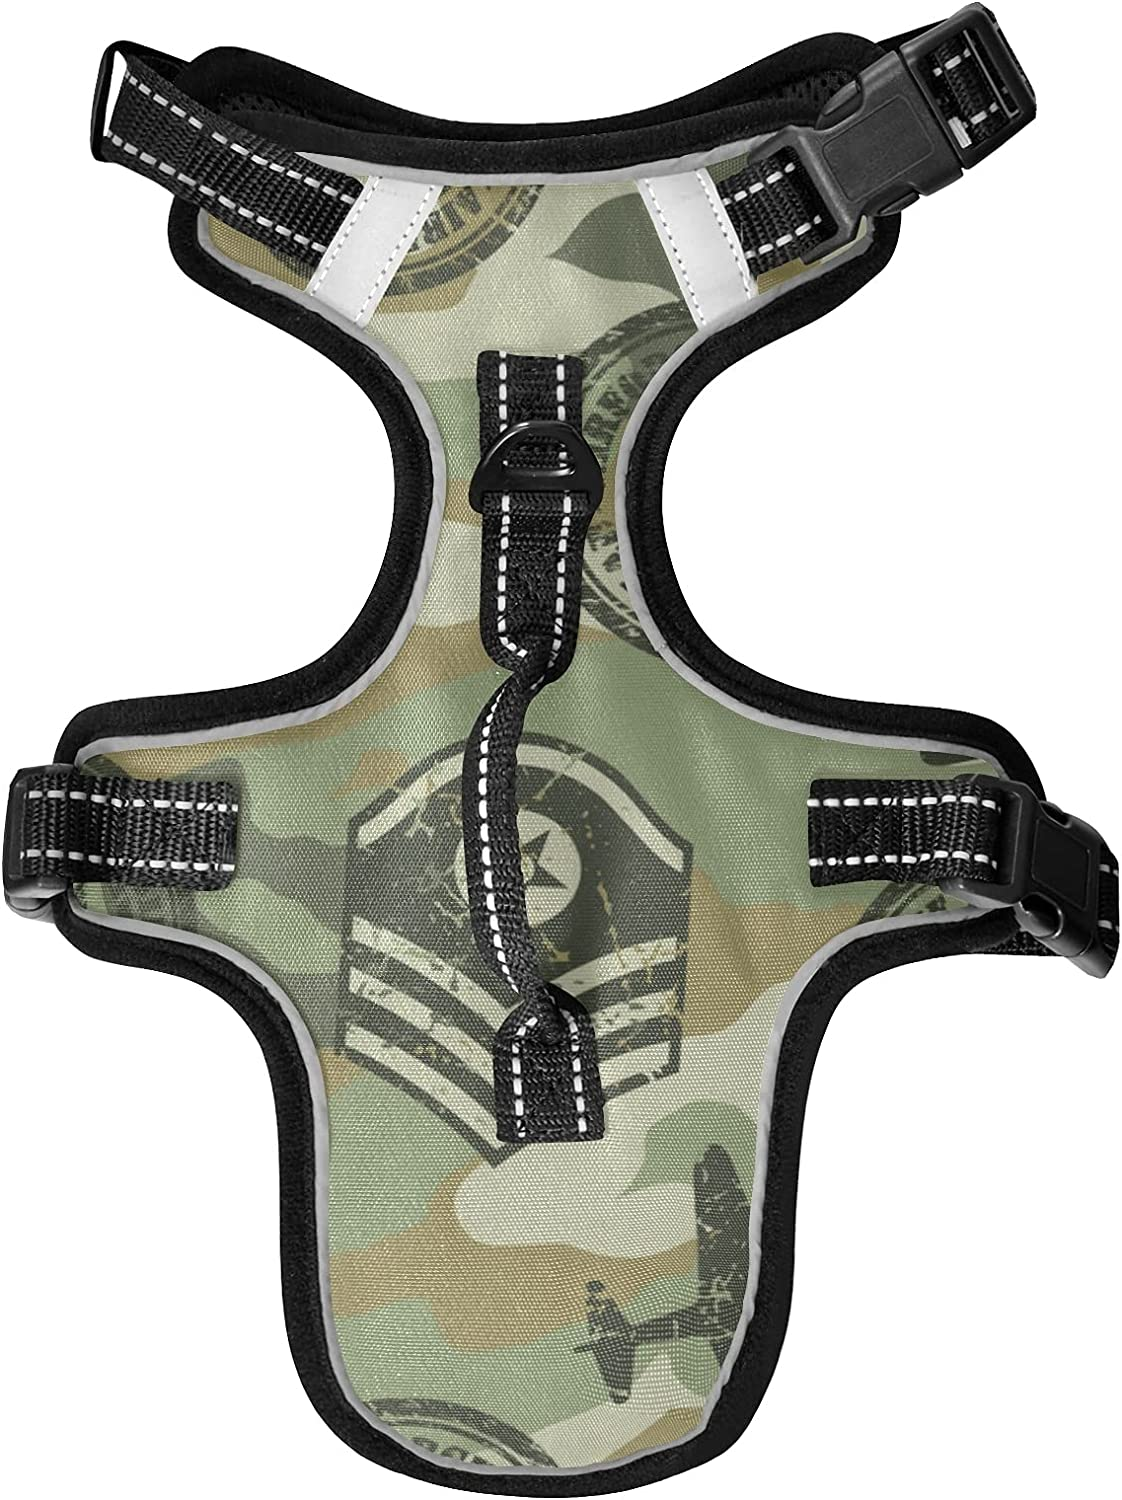 Popular KFBE Plane Camouflage Cat Product Harnesses Leash Vest and Dog